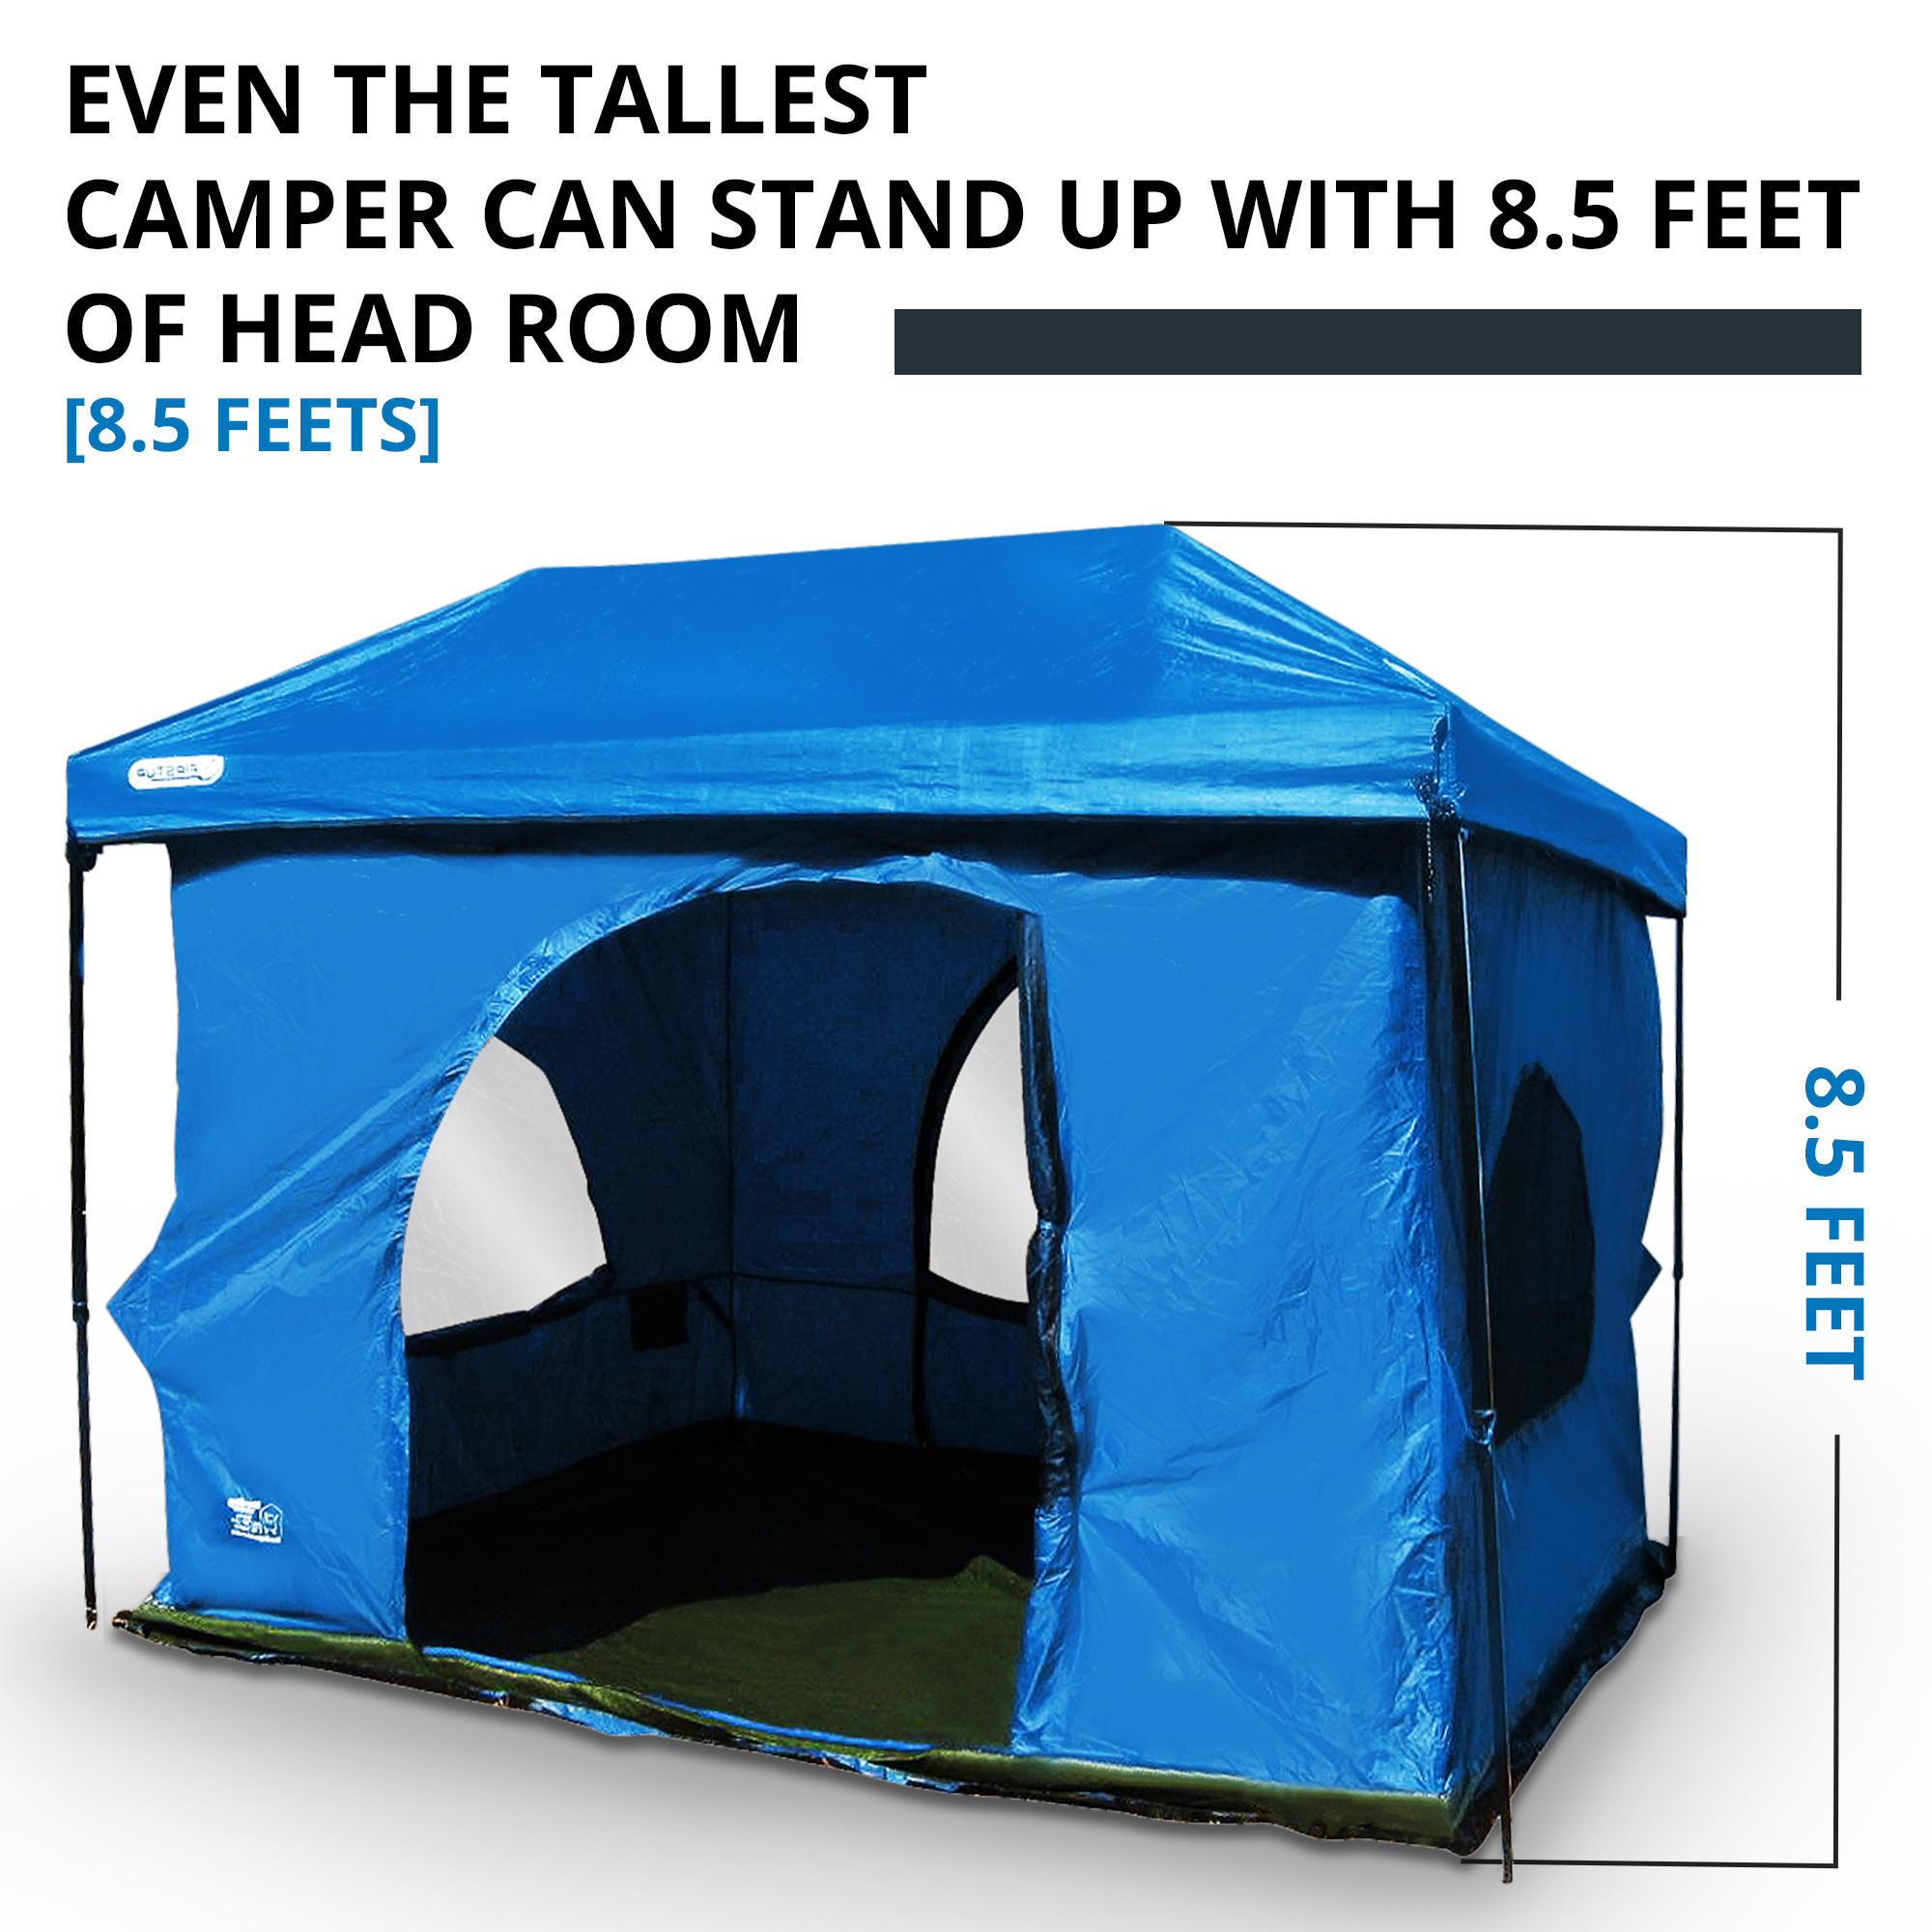 sc 1 th 225 & Standing Room 100 hanging Tent - Standing Room Tents